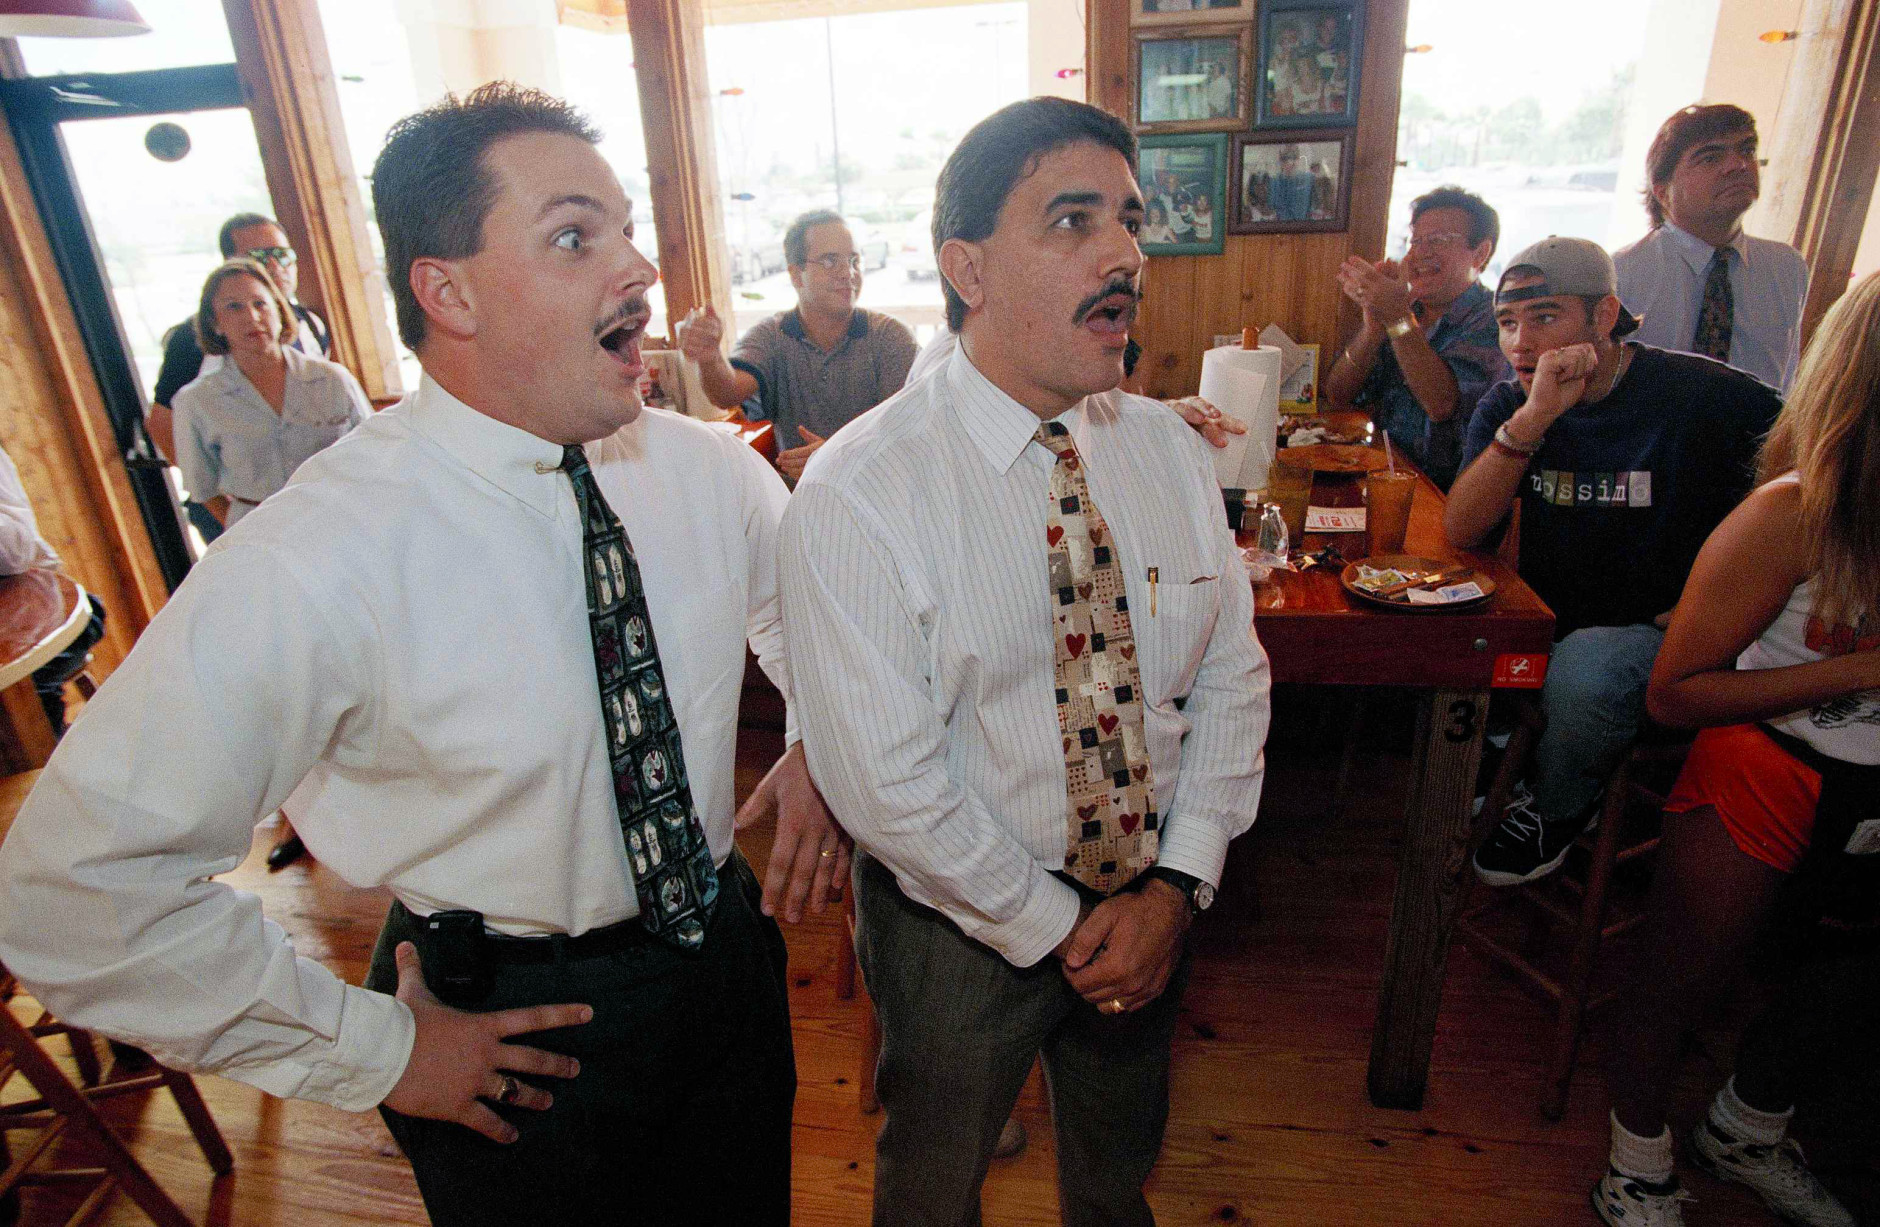 FILE - In this Oct. 3, 1995 file photo, Justin Barker, left, and his colleague Juan Borrego react as they hear the verdict of the O.J. Simpson trial from a Hooters restaurant in Miami. Barker was jubilant while Borrego had believed he was guilty beyond reasonable doubt. Simpson was acquitted for the June 1994 murders of his ex-wife and her friend. (AP Photo/Marta Lavandier)